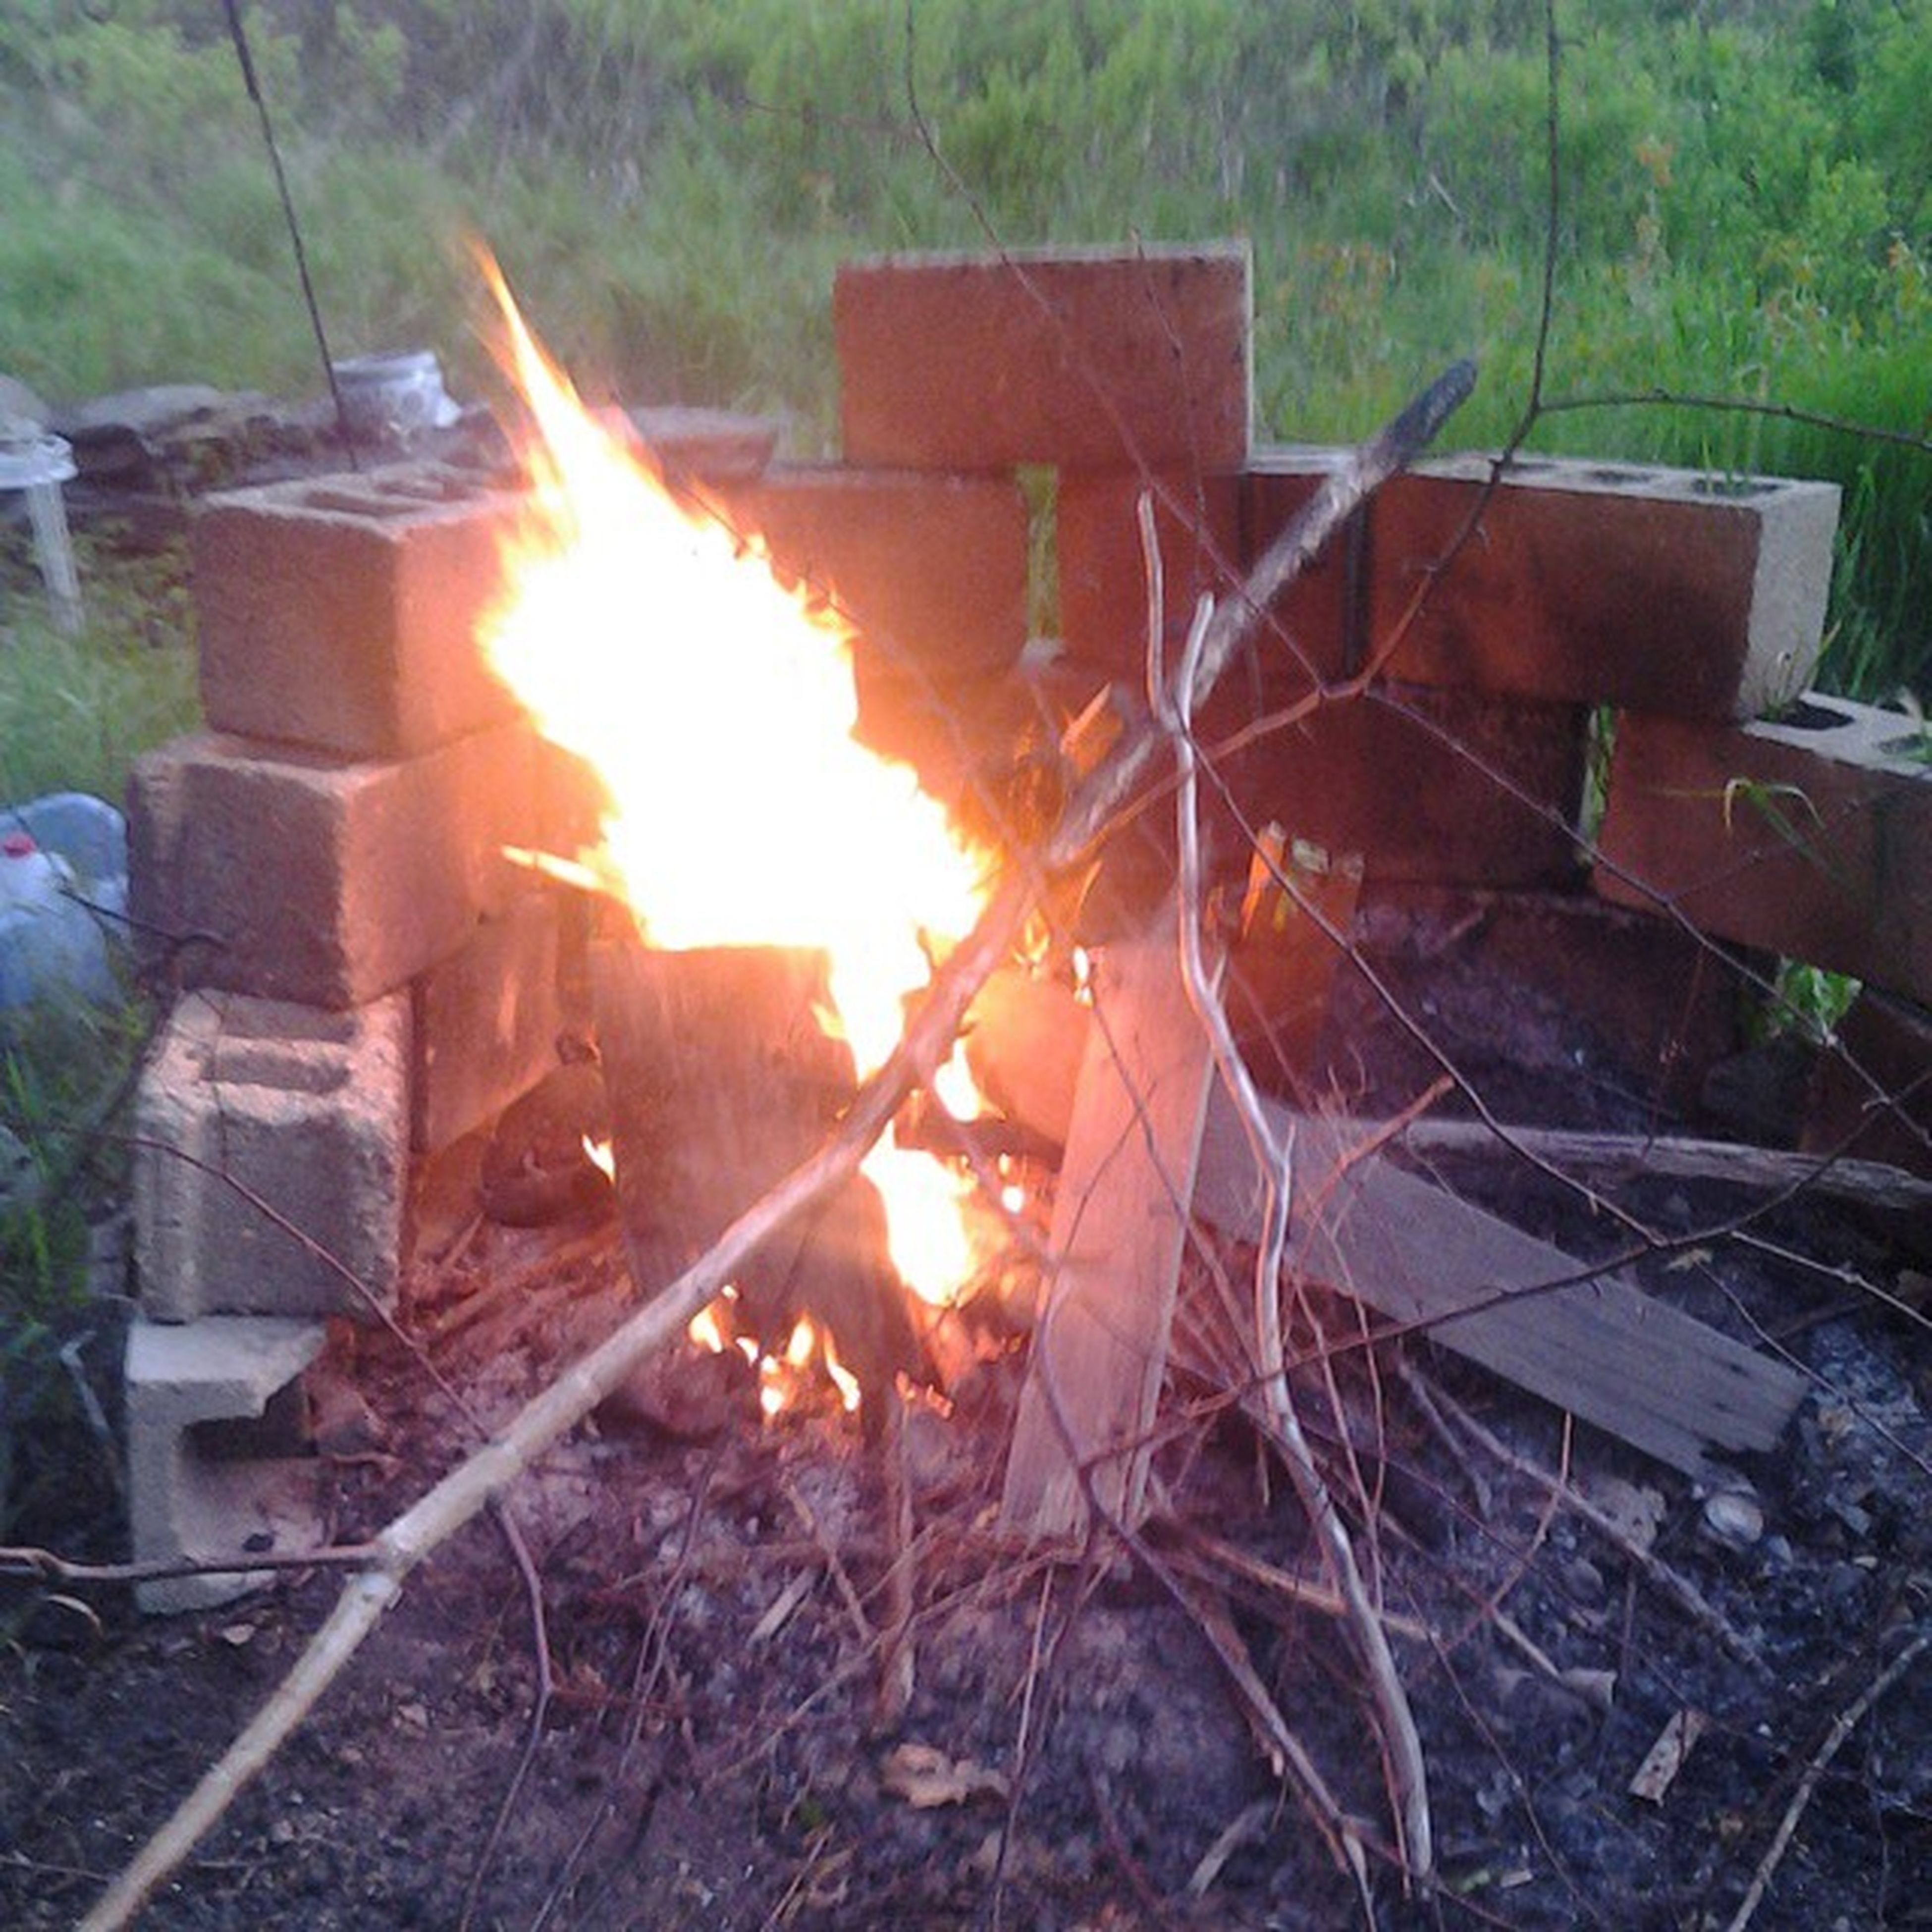 flame, burning, heat - temperature, fire - natural phenomenon, firewood, wood - material, bonfire, log, field, orange color, sunlight, glowing, heat, fire, forest, grass, outdoors, campfire, fence, wood